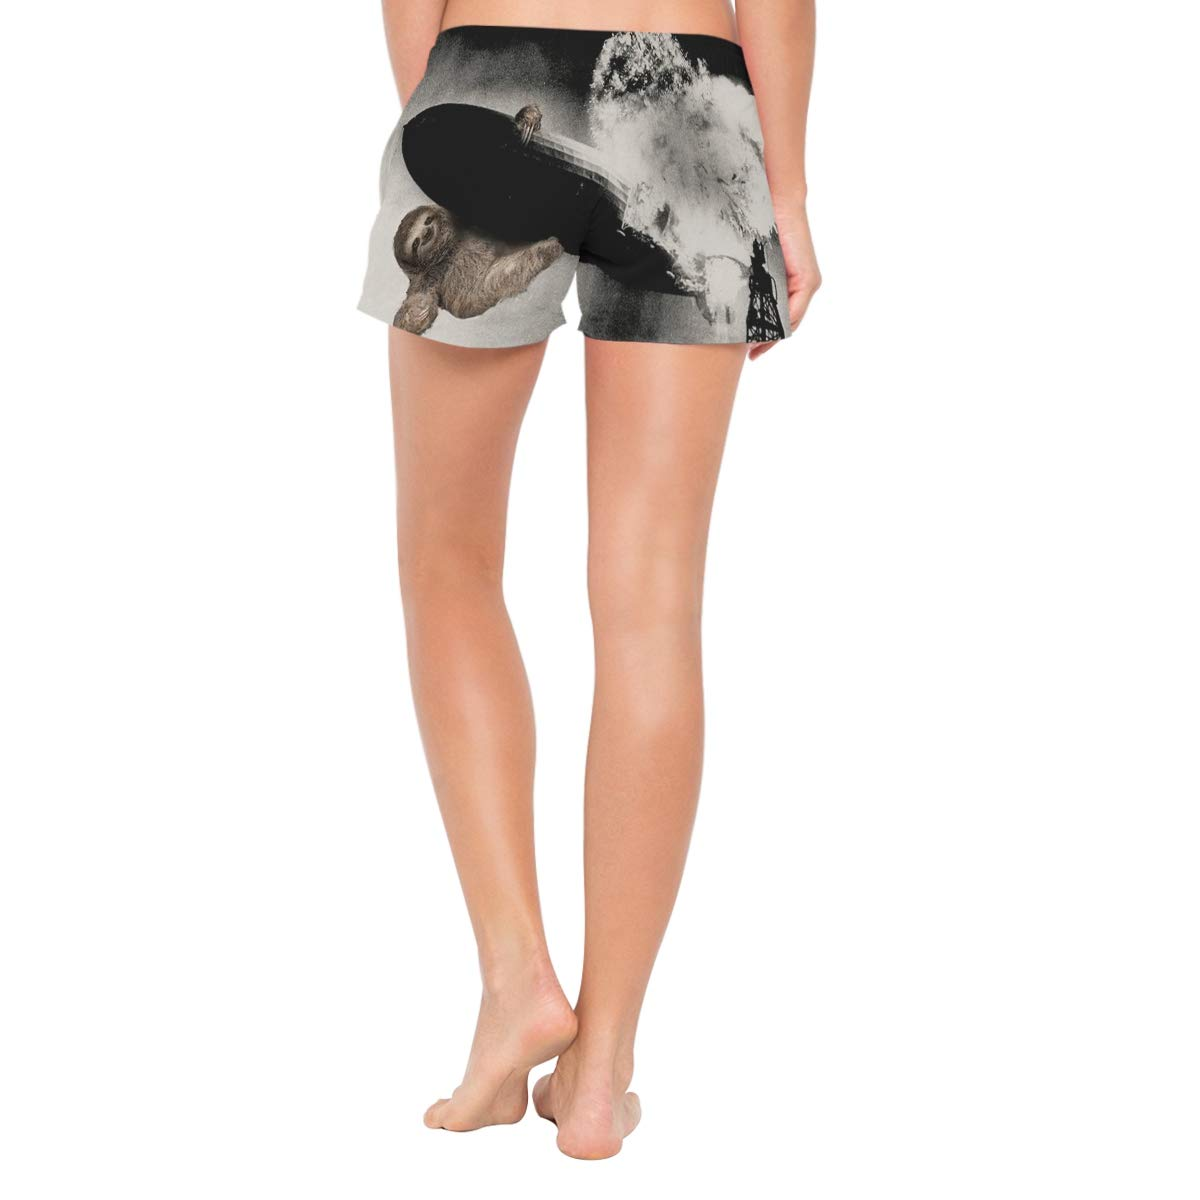 Lttedeng Womens Swim Trunks Quick Dry Beach Shorts with Mesh Lining Sloth Sinking Hindenburg